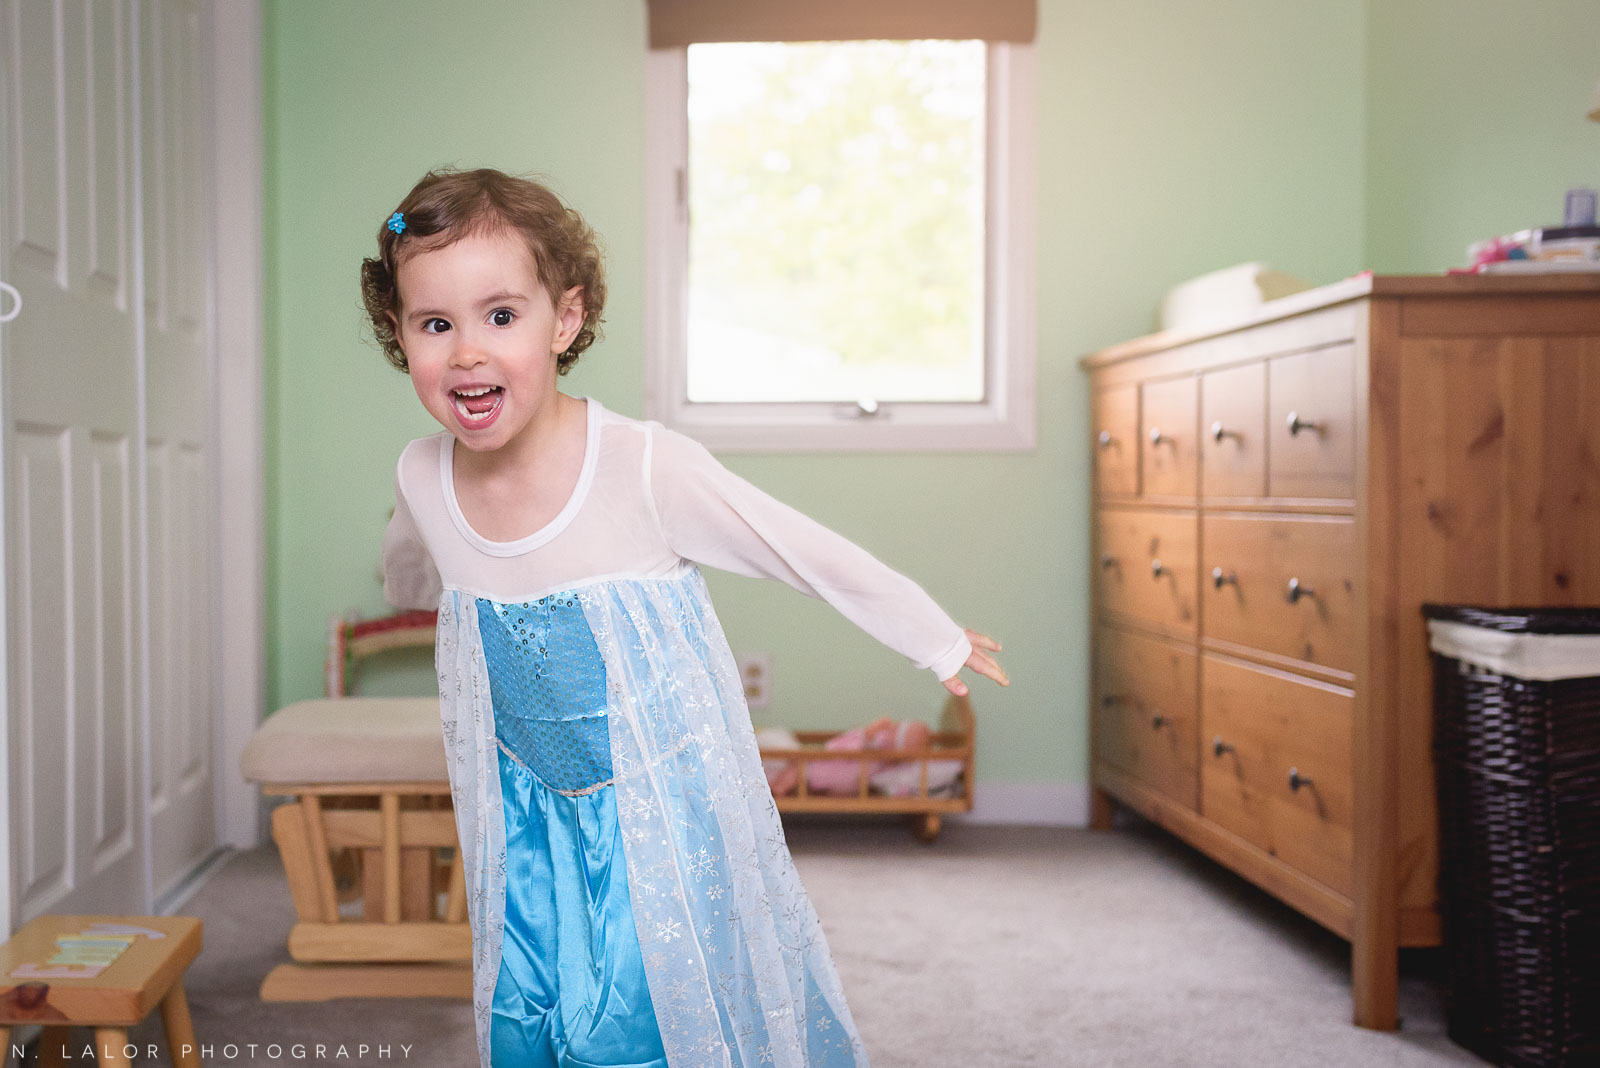 Dancing as Elsa from Frozen. Lifestyle photo by N. Lalor Photography.